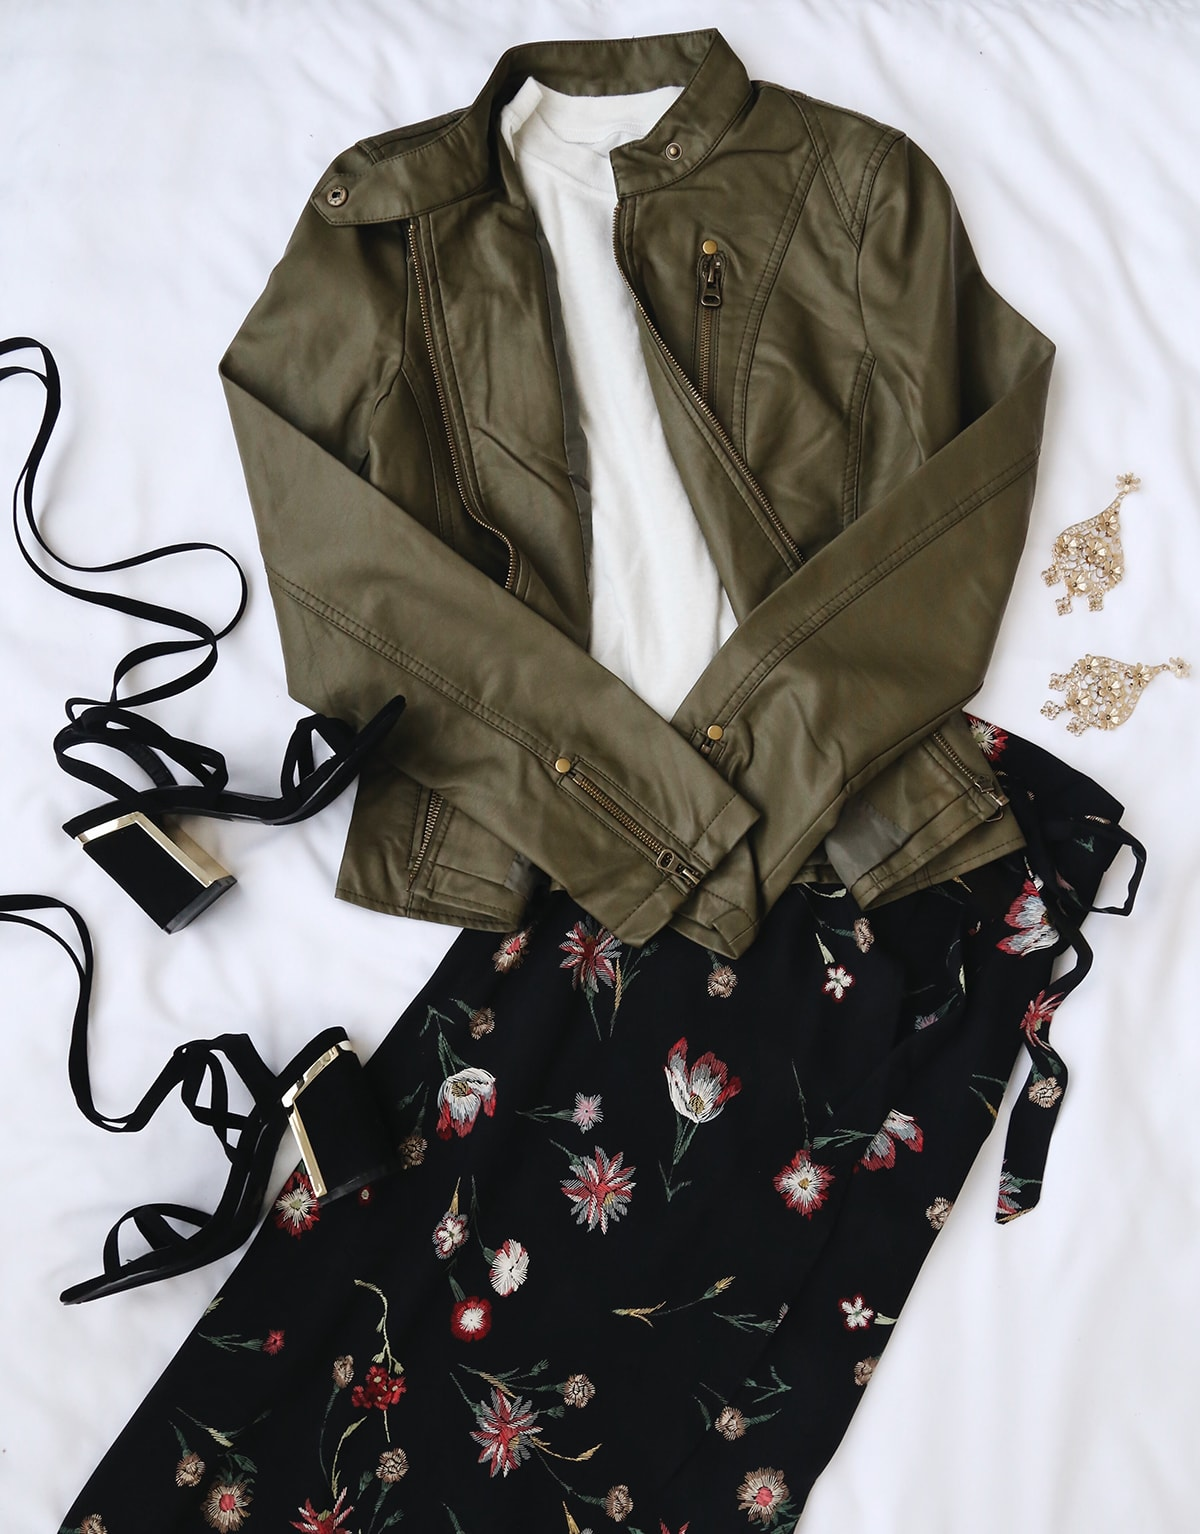 fall florals - skirt